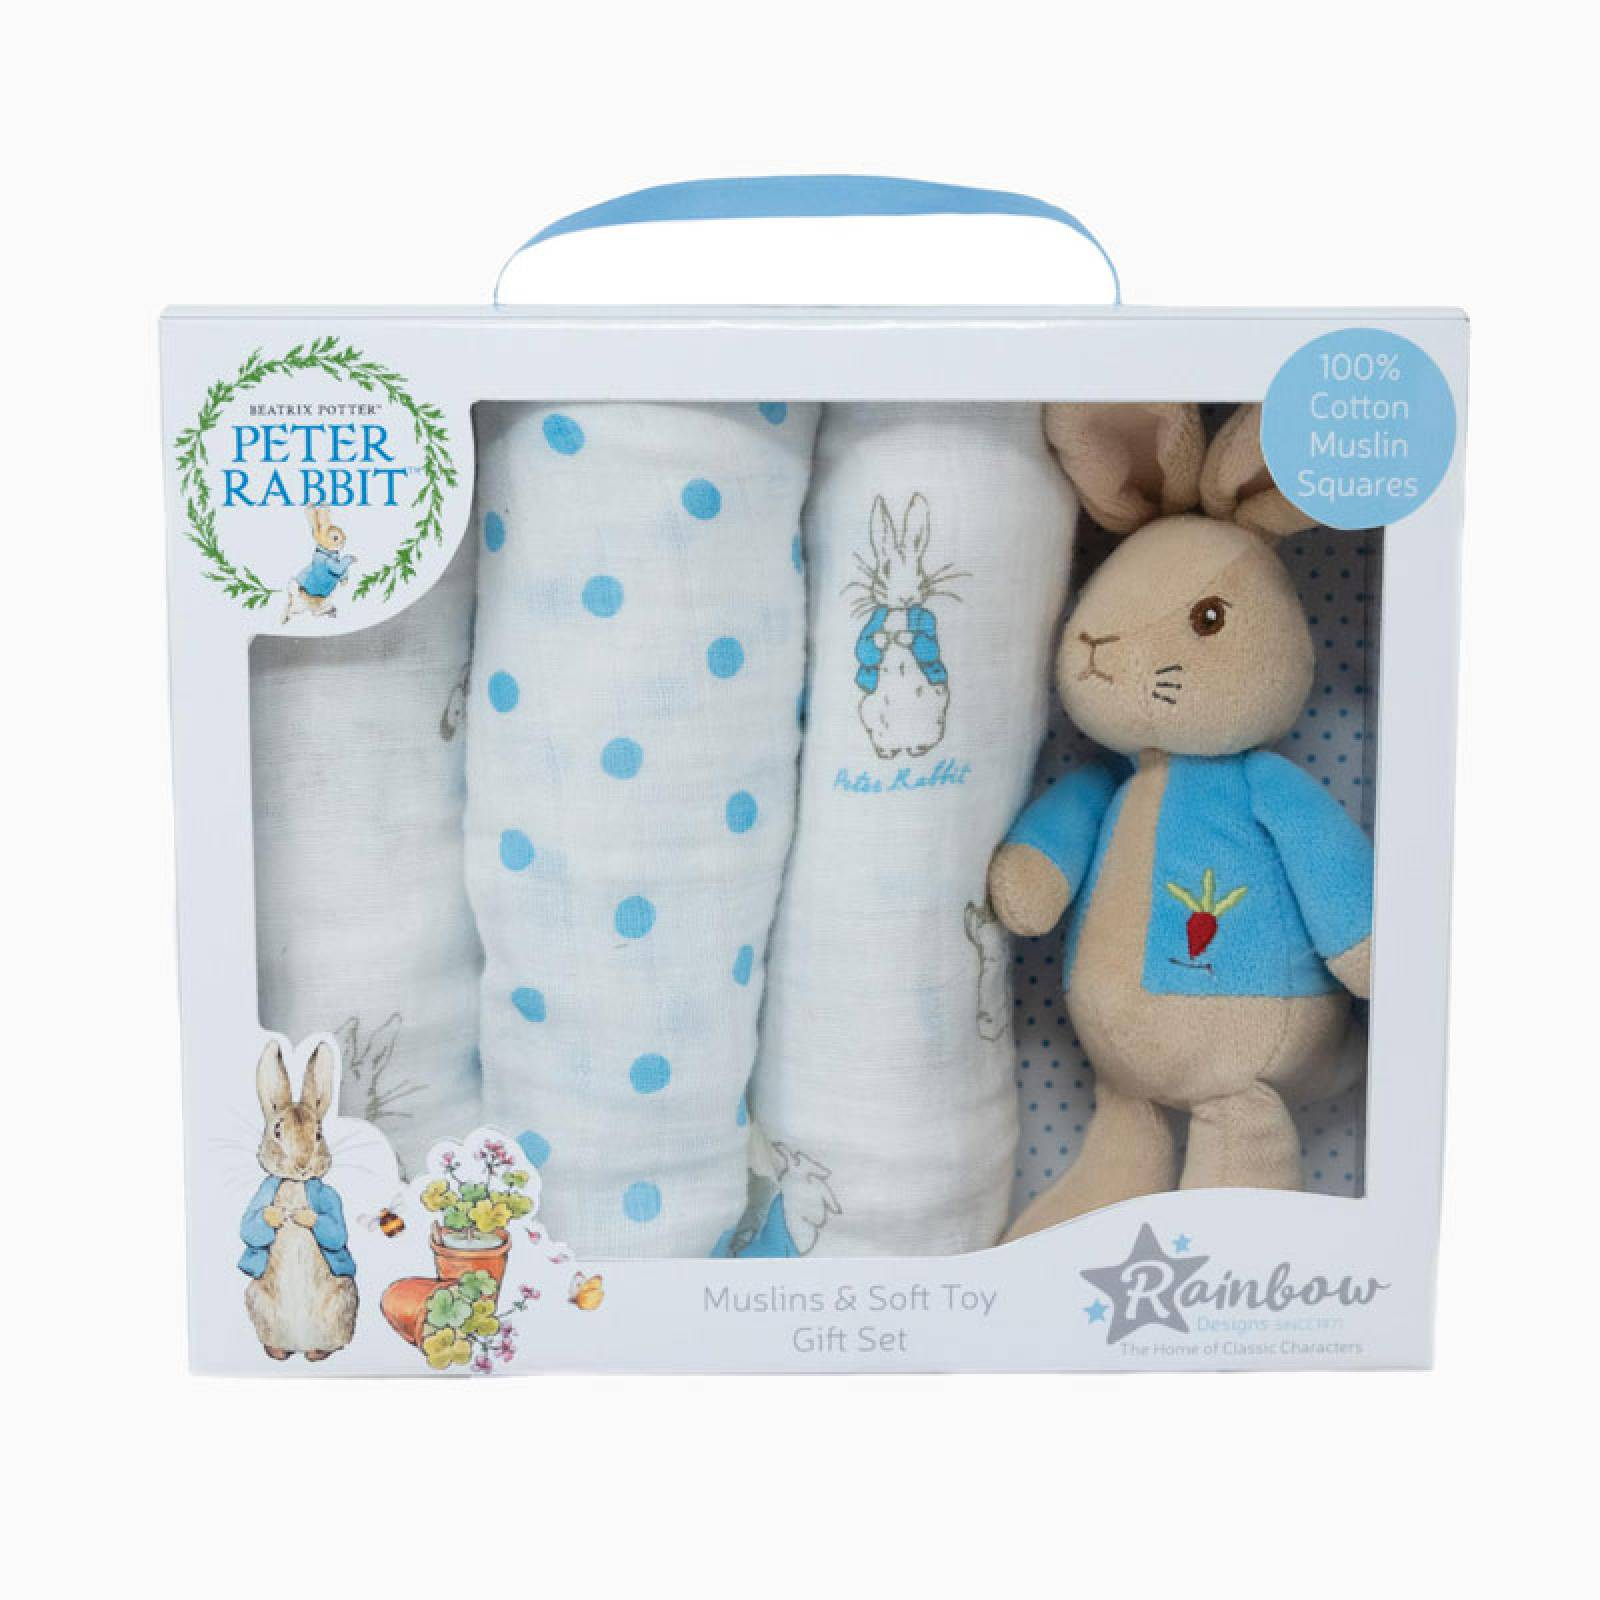 Peter Rabbit Soft Toy And Muslin Set thumbnails